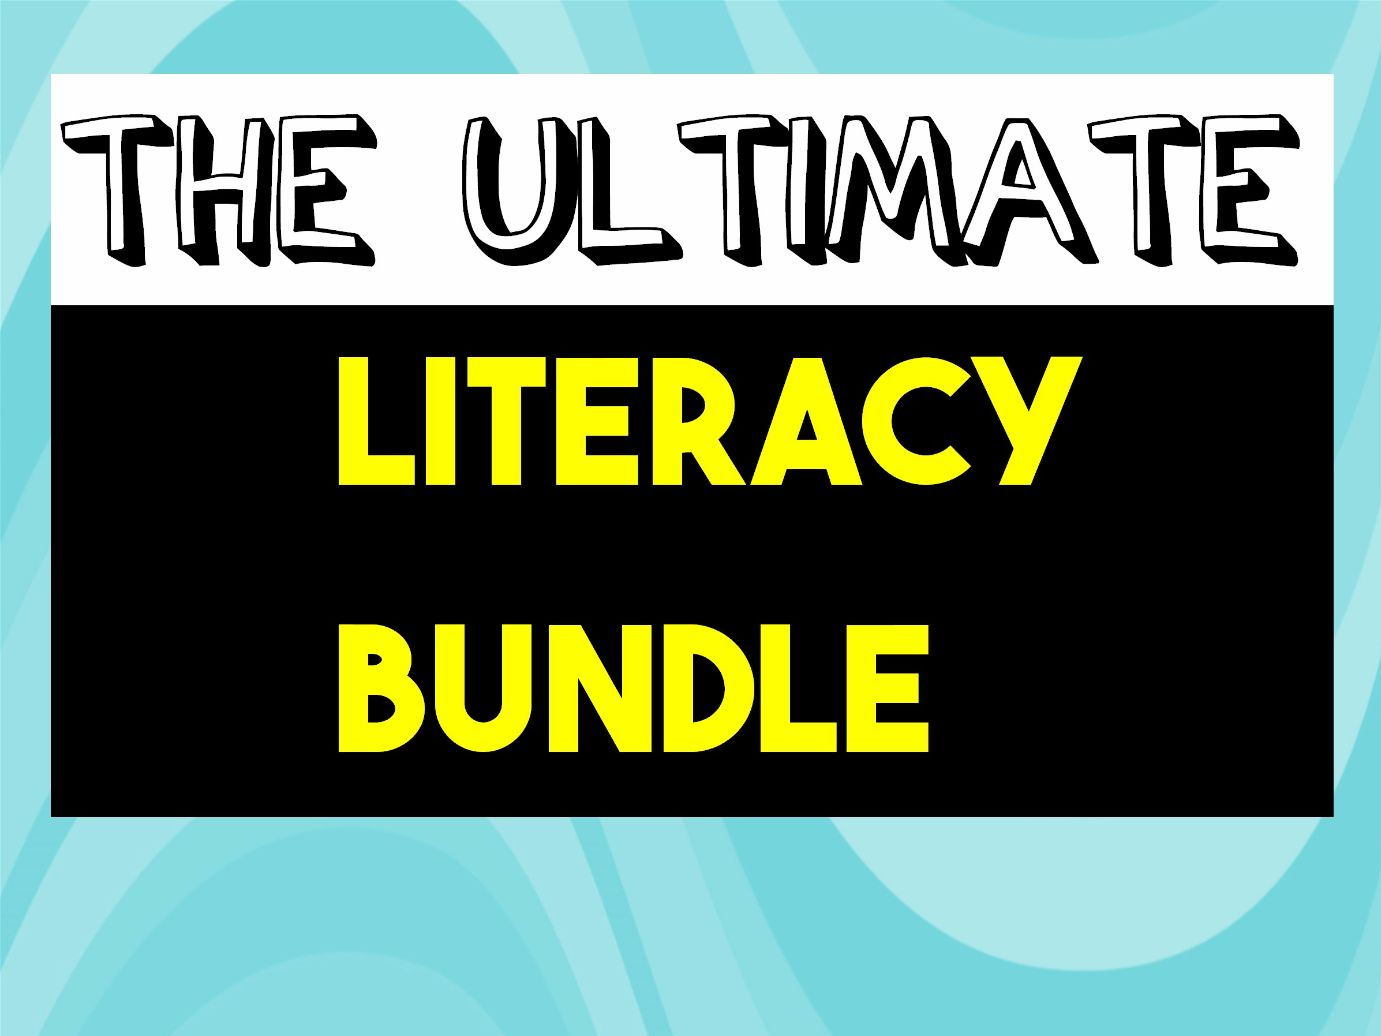 The Ultimate Literacy Bundle